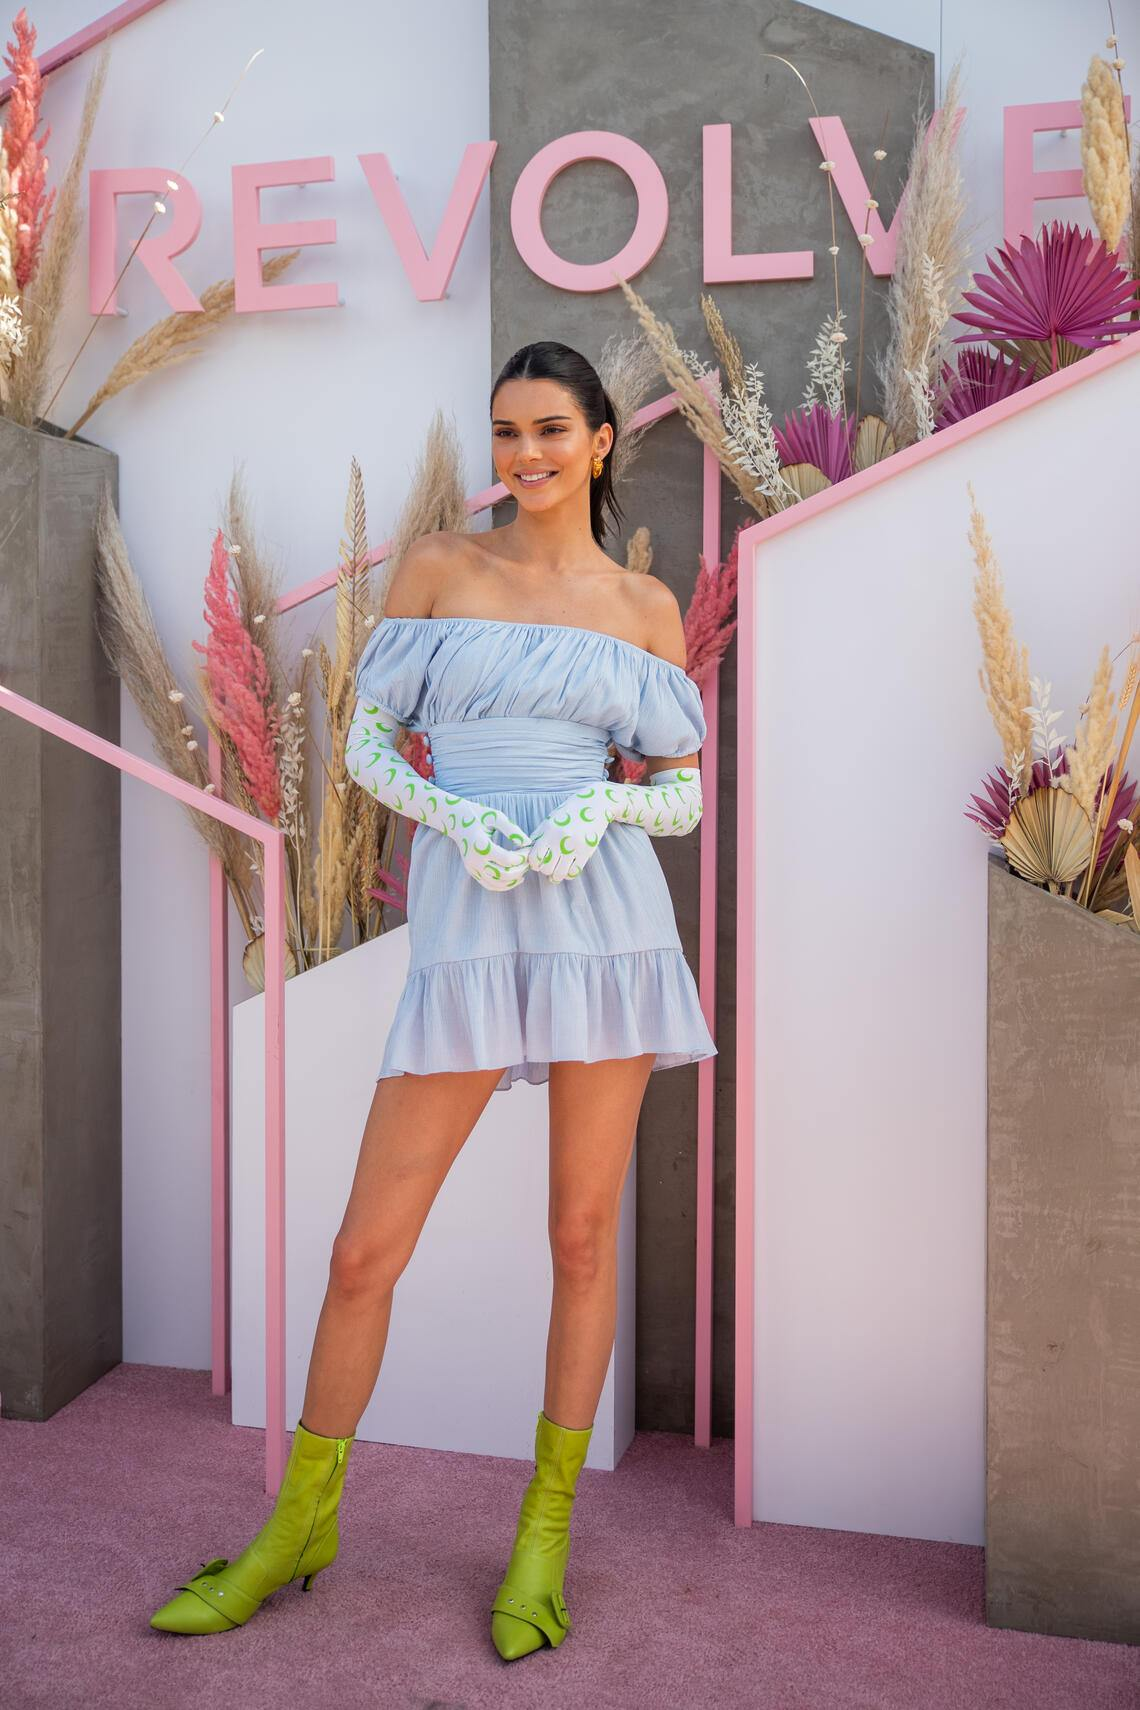 LA QUINTA, CALIFORNIA - APRIL 14: Kendall Jenner is seen wearing blue off shoulder dress, gloves with print, green sock boots at Revolve Festival during Coachella Festival on April 14, 2019 in La Quinta, California. (Photo by Christian Vierig/Getty Images)